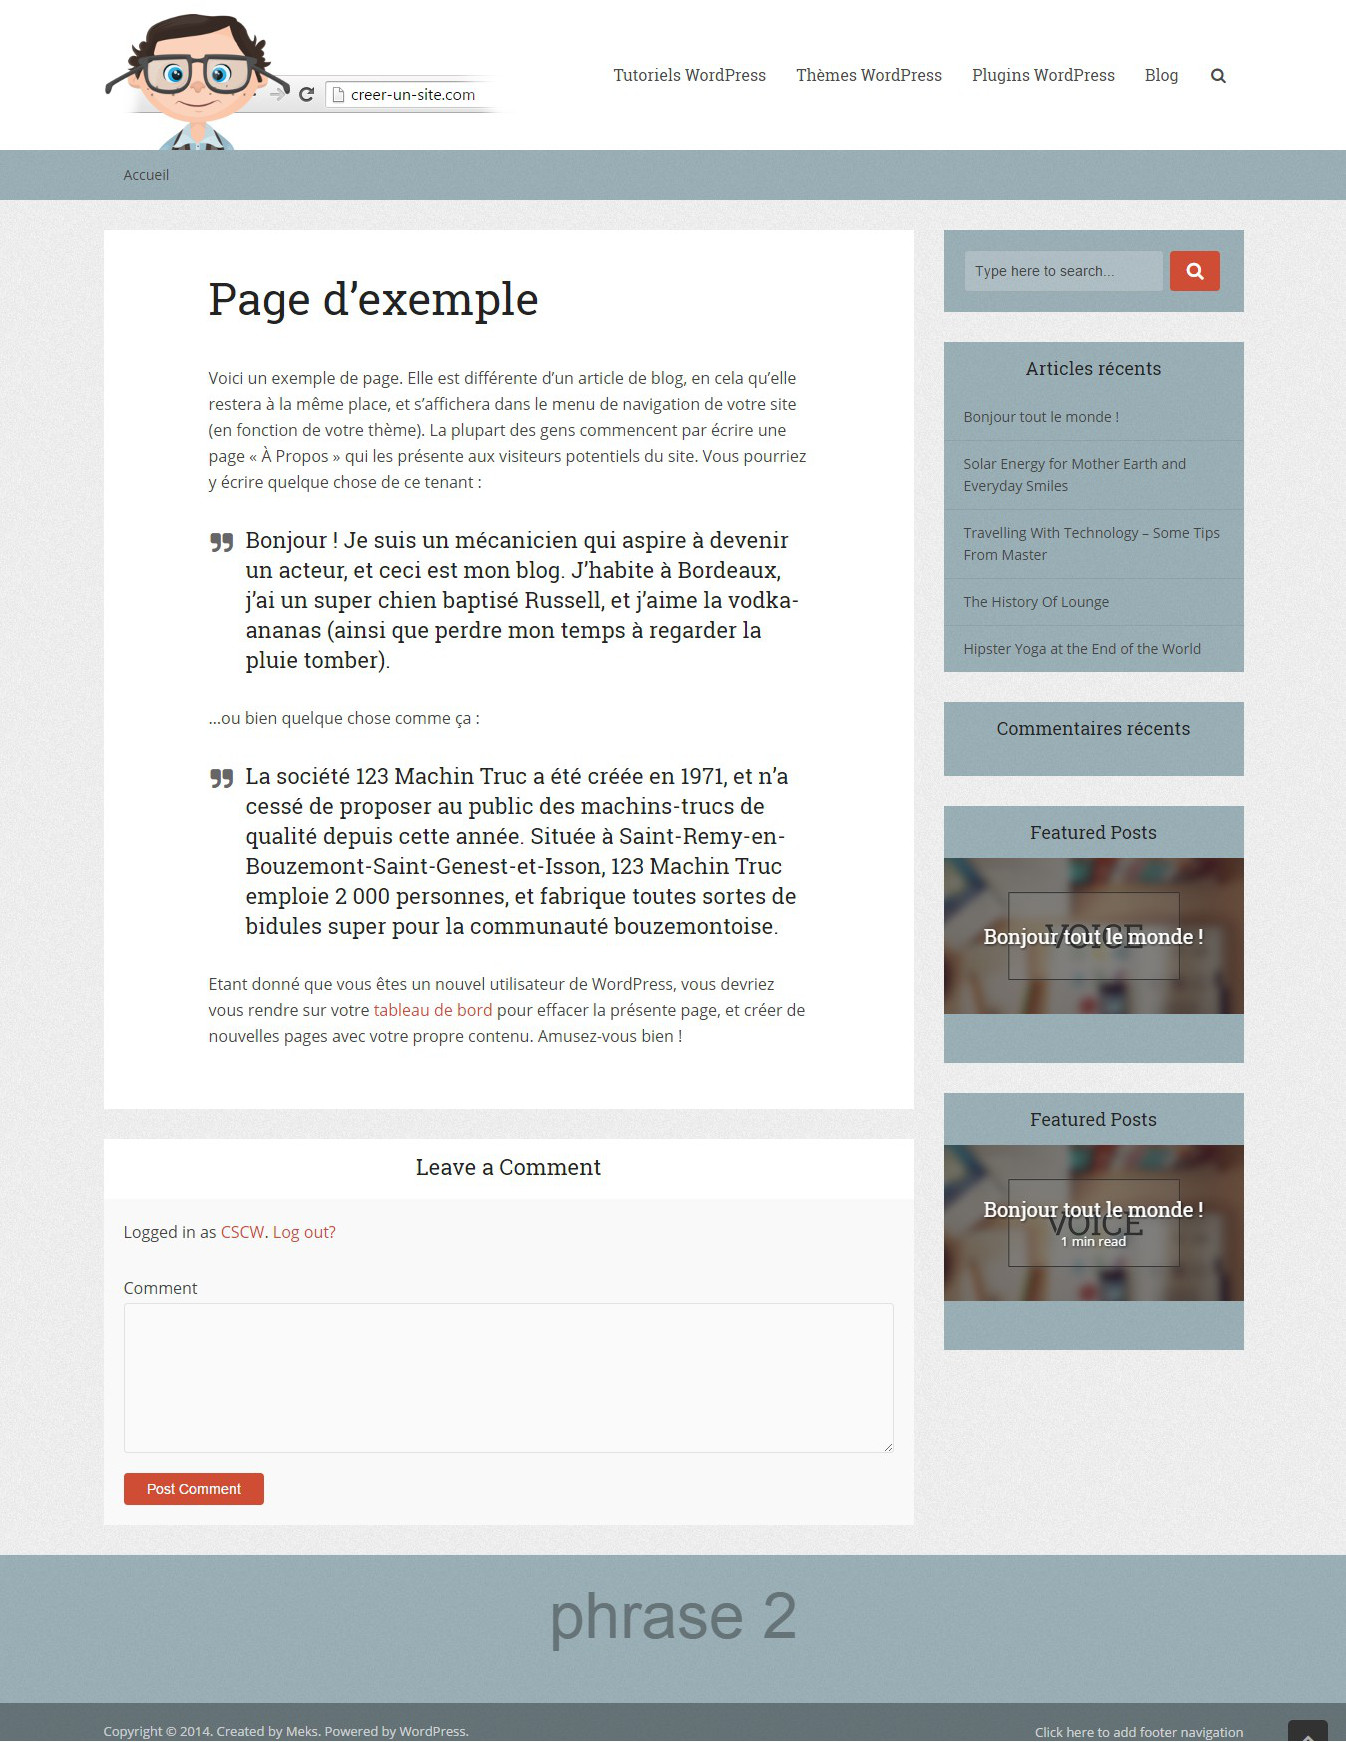 personnalisation theme wordpress resultat final